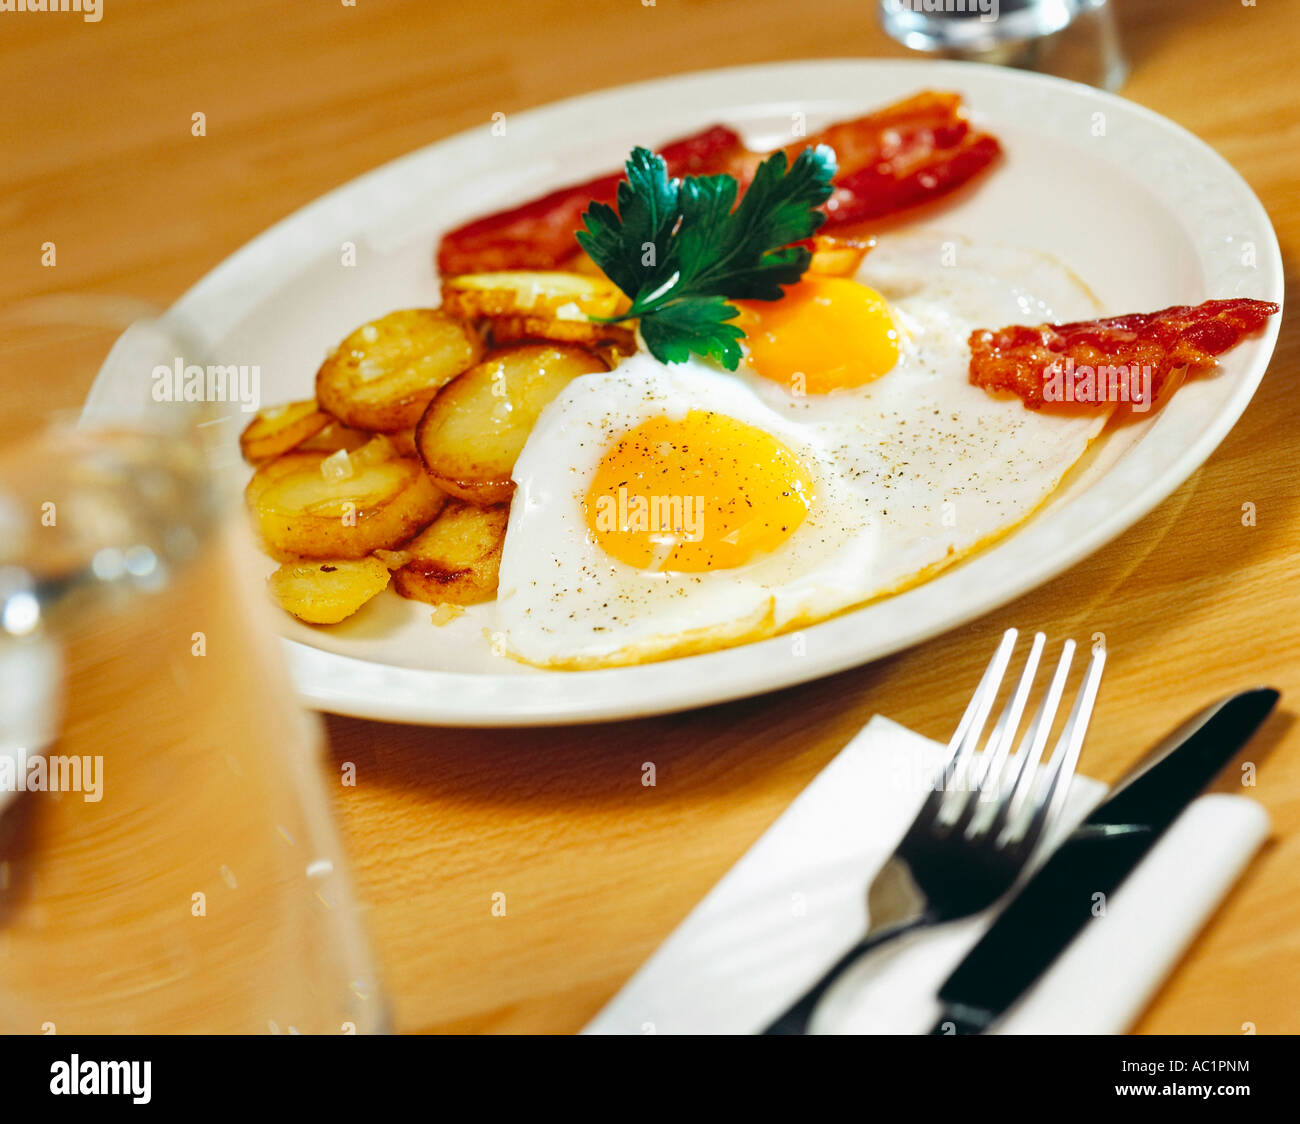 Fried potatotes, eggs and bacon - Stock Image